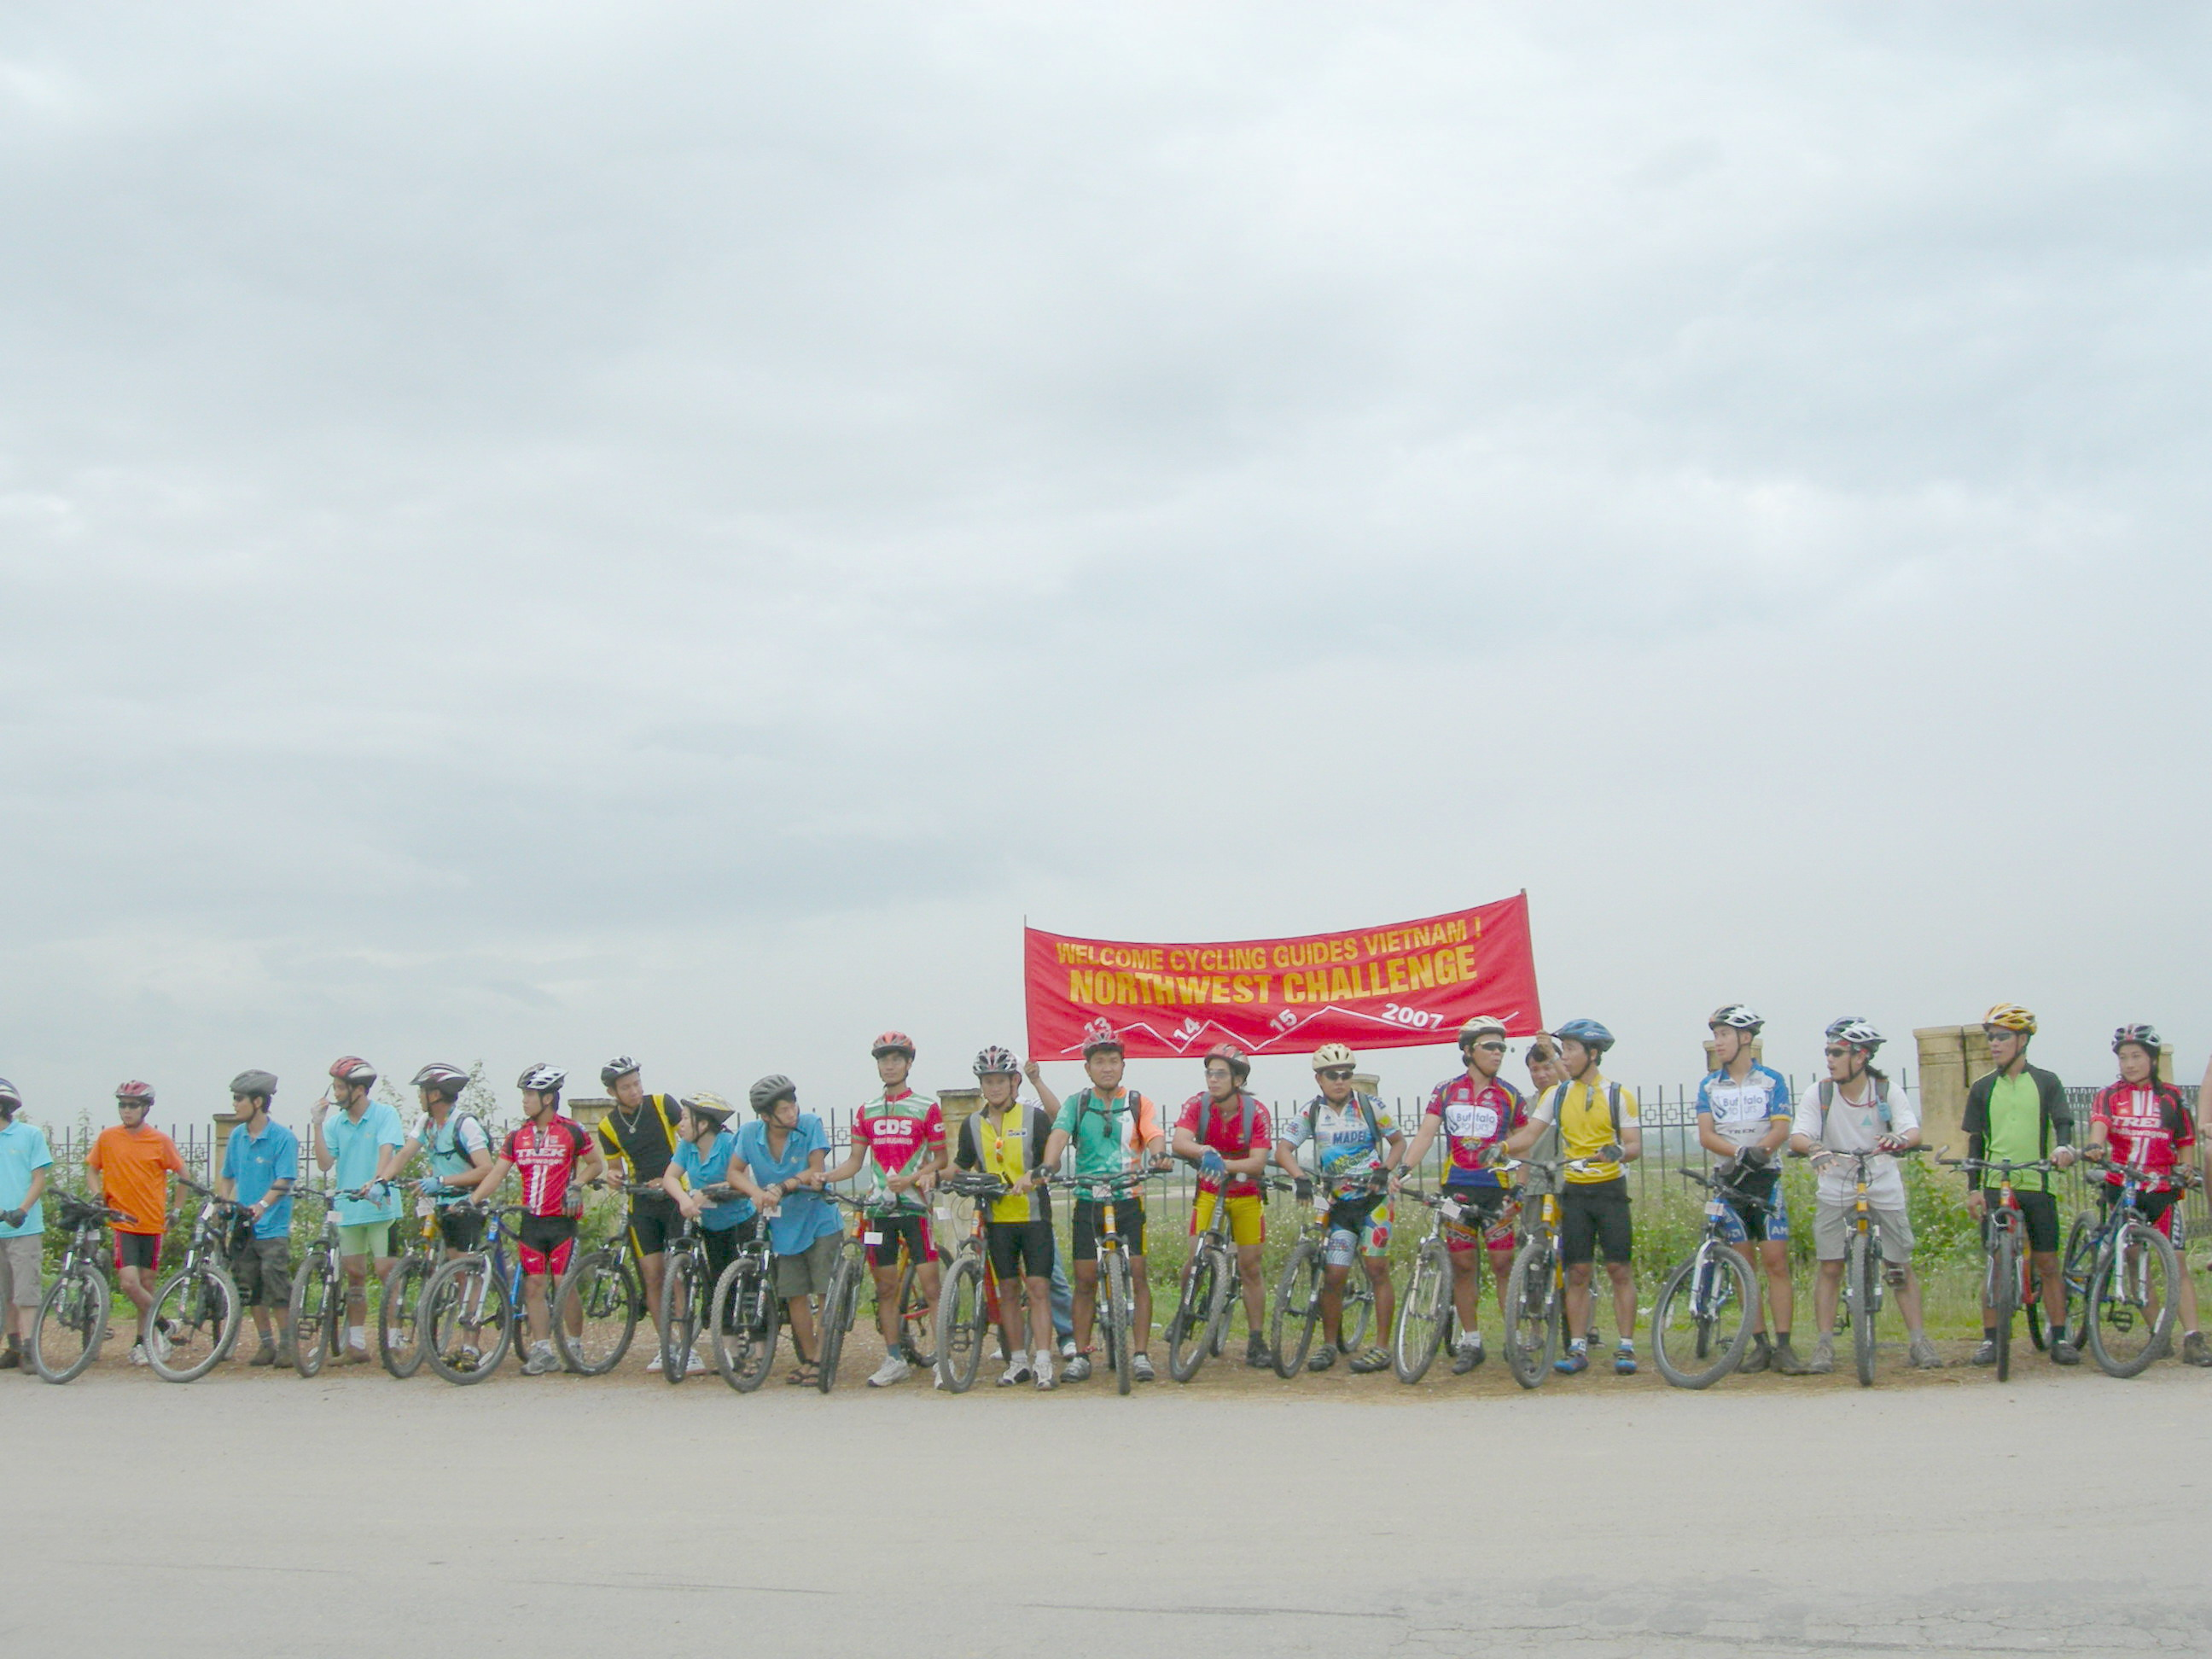 Sinhbalo annual bicycle race - Northwest challenge 2007